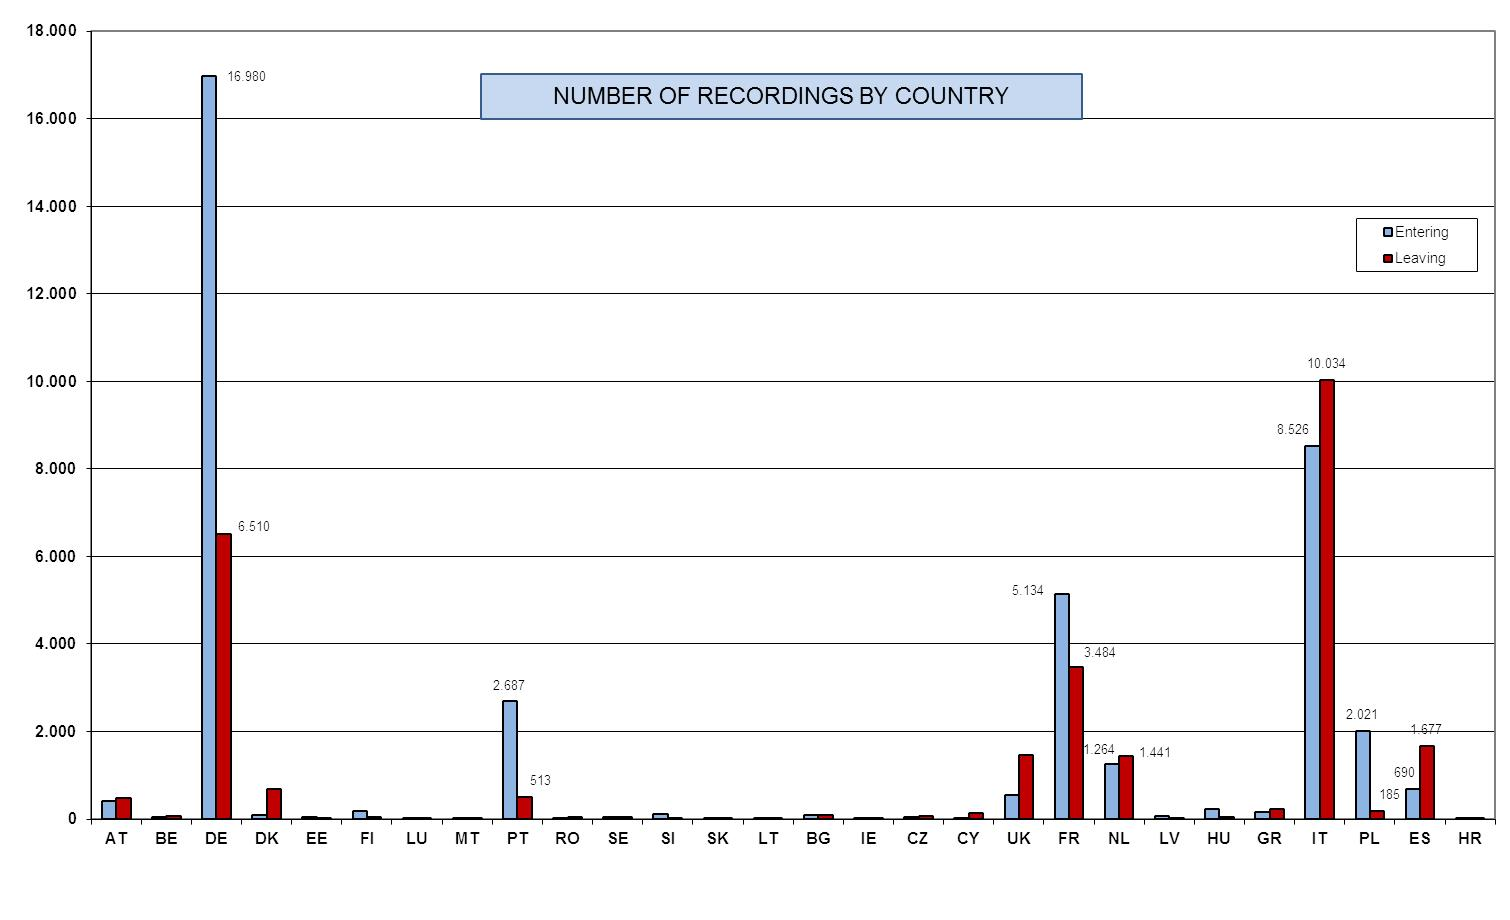 Eur Lex 52016sc0470 Et Next Diagram2 You Will See A Daily Graph That Allows To Monitor Diagram 6 Total Number Of Recordings Q3 2007 Q4 2014 By Member State